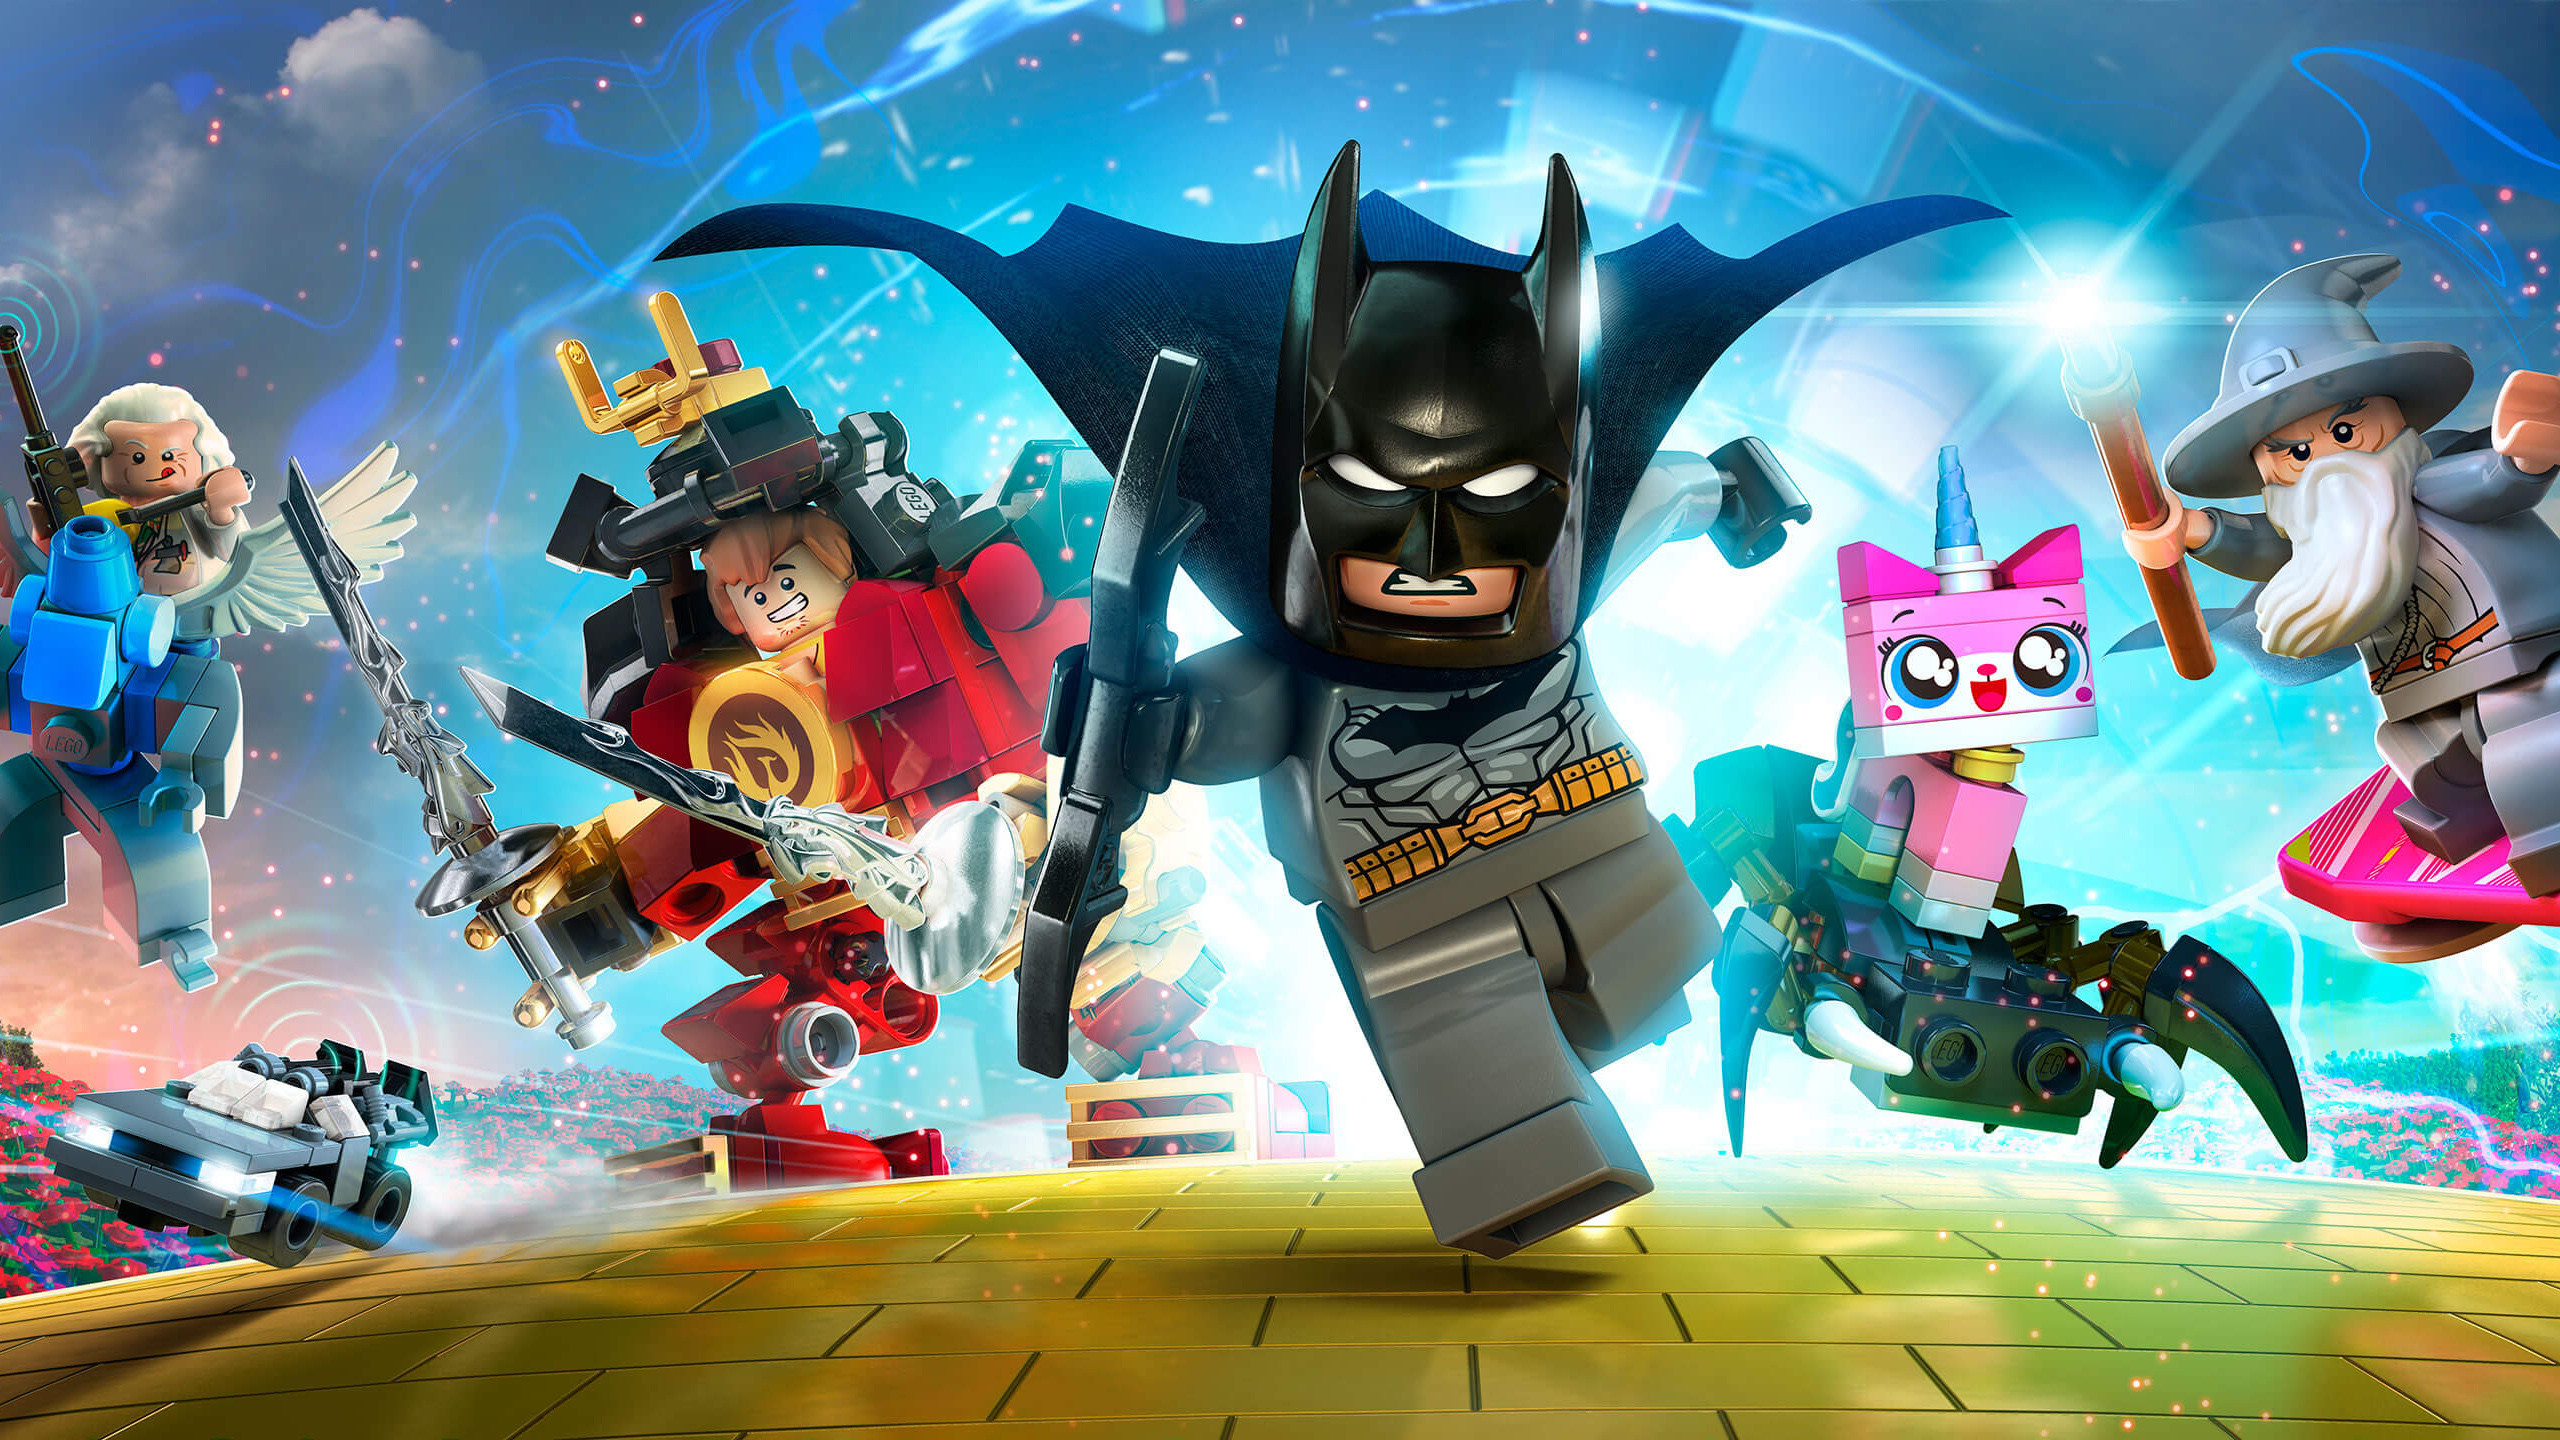 2560x1440 Wallpapers-lego-dimensions-game-HD